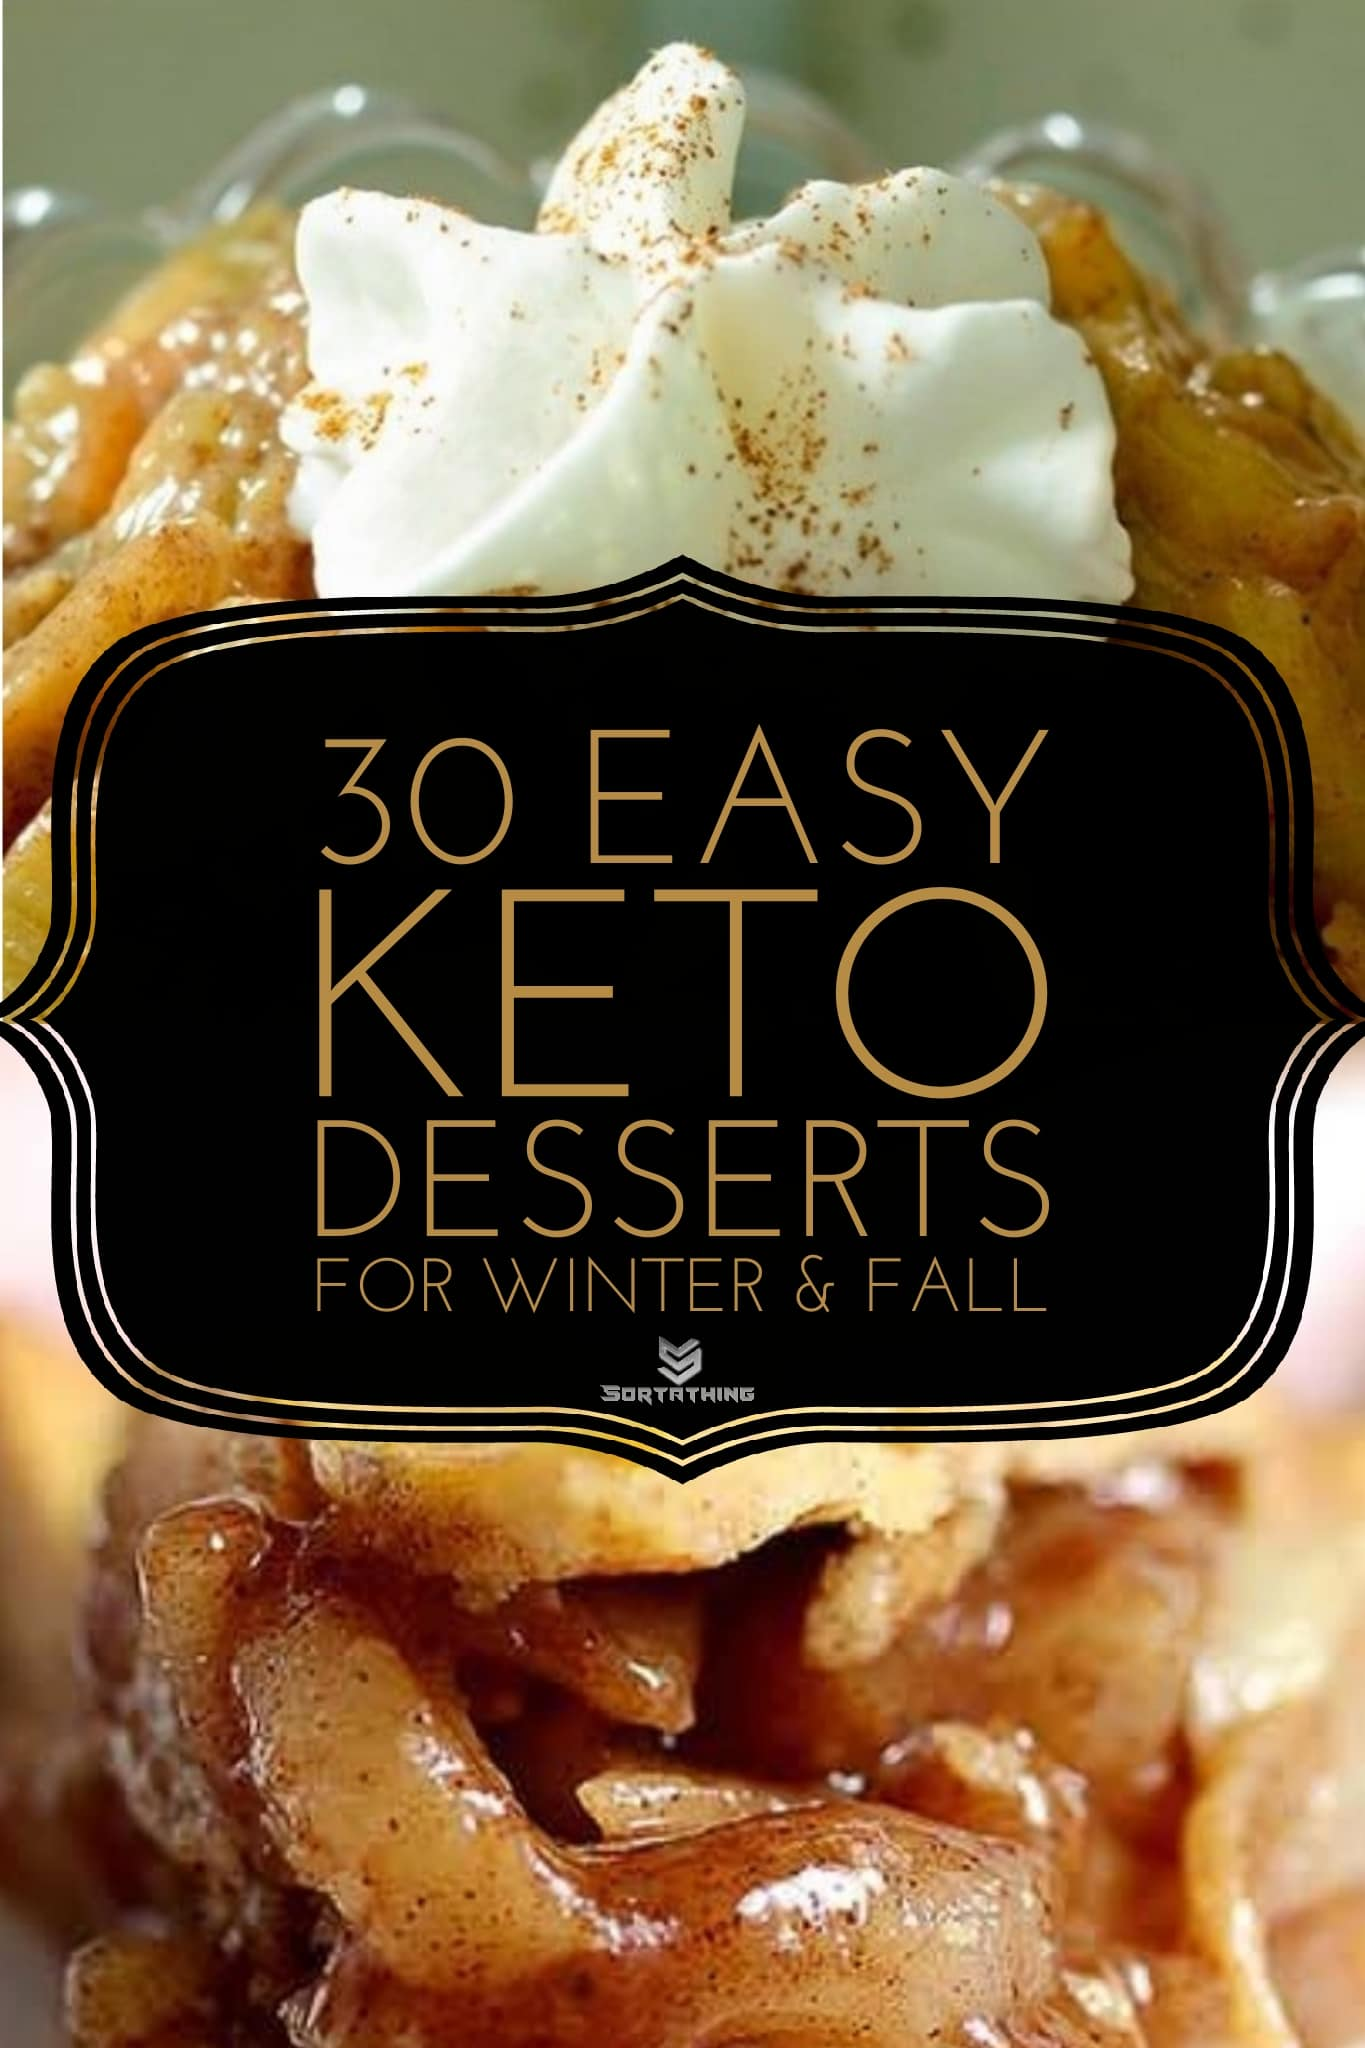 Keto Apple Pie Filling with Eggplant and The Best Keto Apple Pie with Chayote